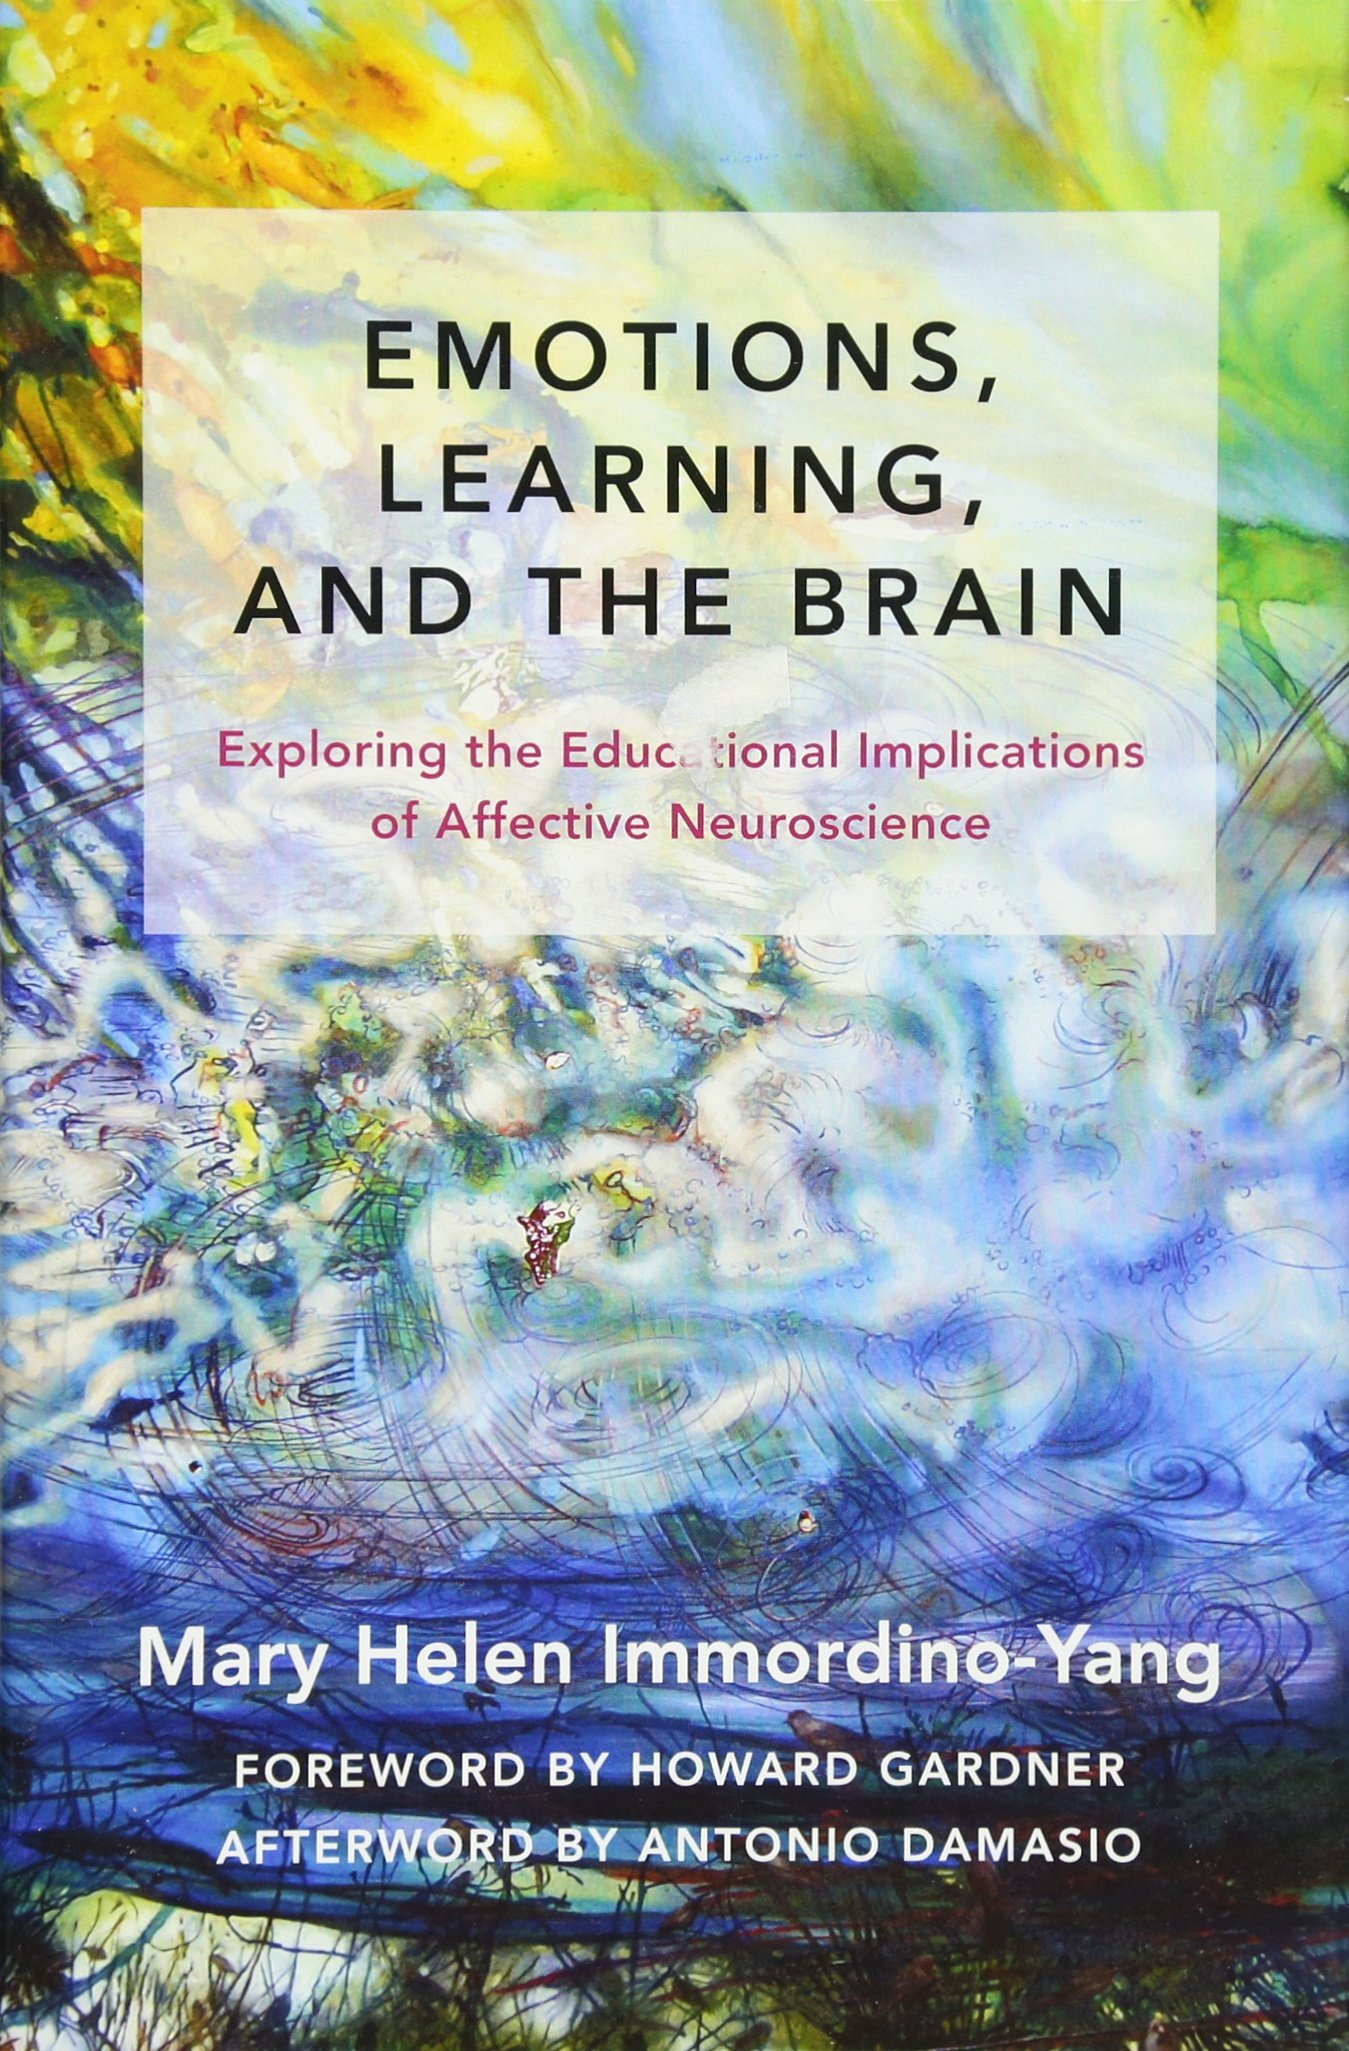 Emotions, Learning, and the Brain: Exploring the Educational Implications  of Affective Neuroscience (The Norton Series on the Social Neuroscience of  Education): Immordino-Yang, Mary Helen, Damasio, Antonio, Gardner, Howard:  9780393709810: Amazon.com: Books